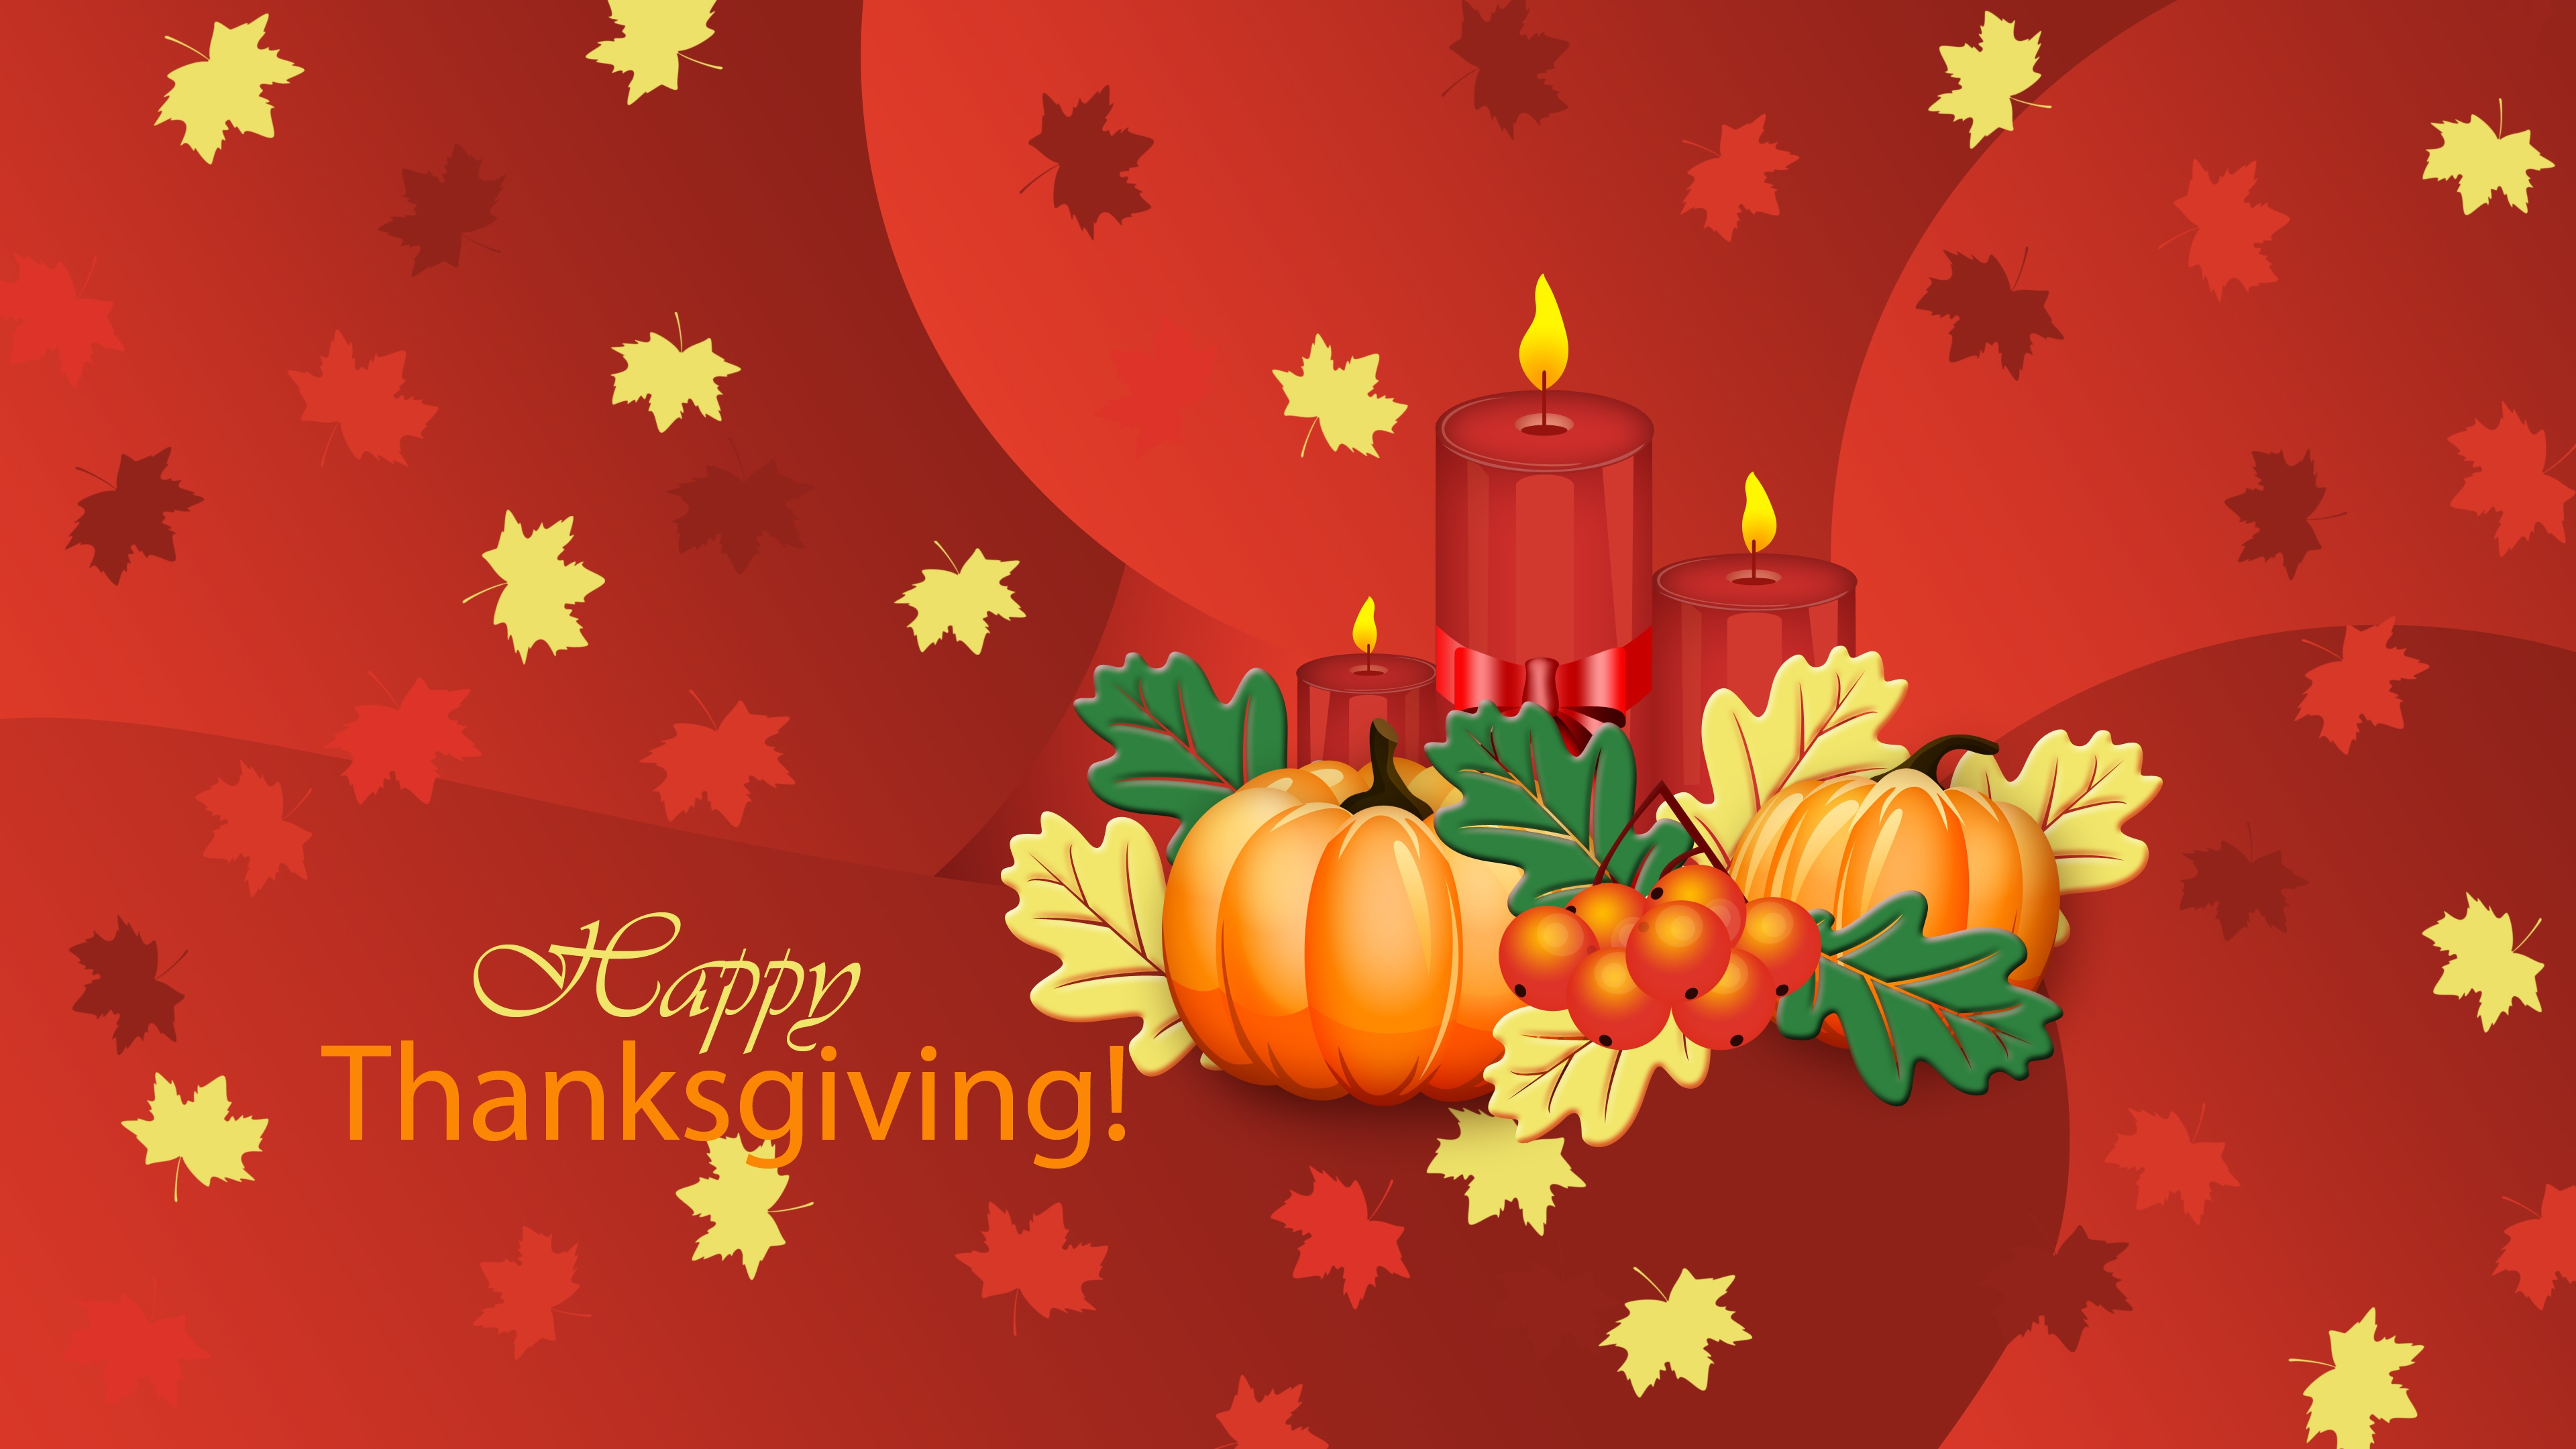 cute thanksgiving background free download #1713